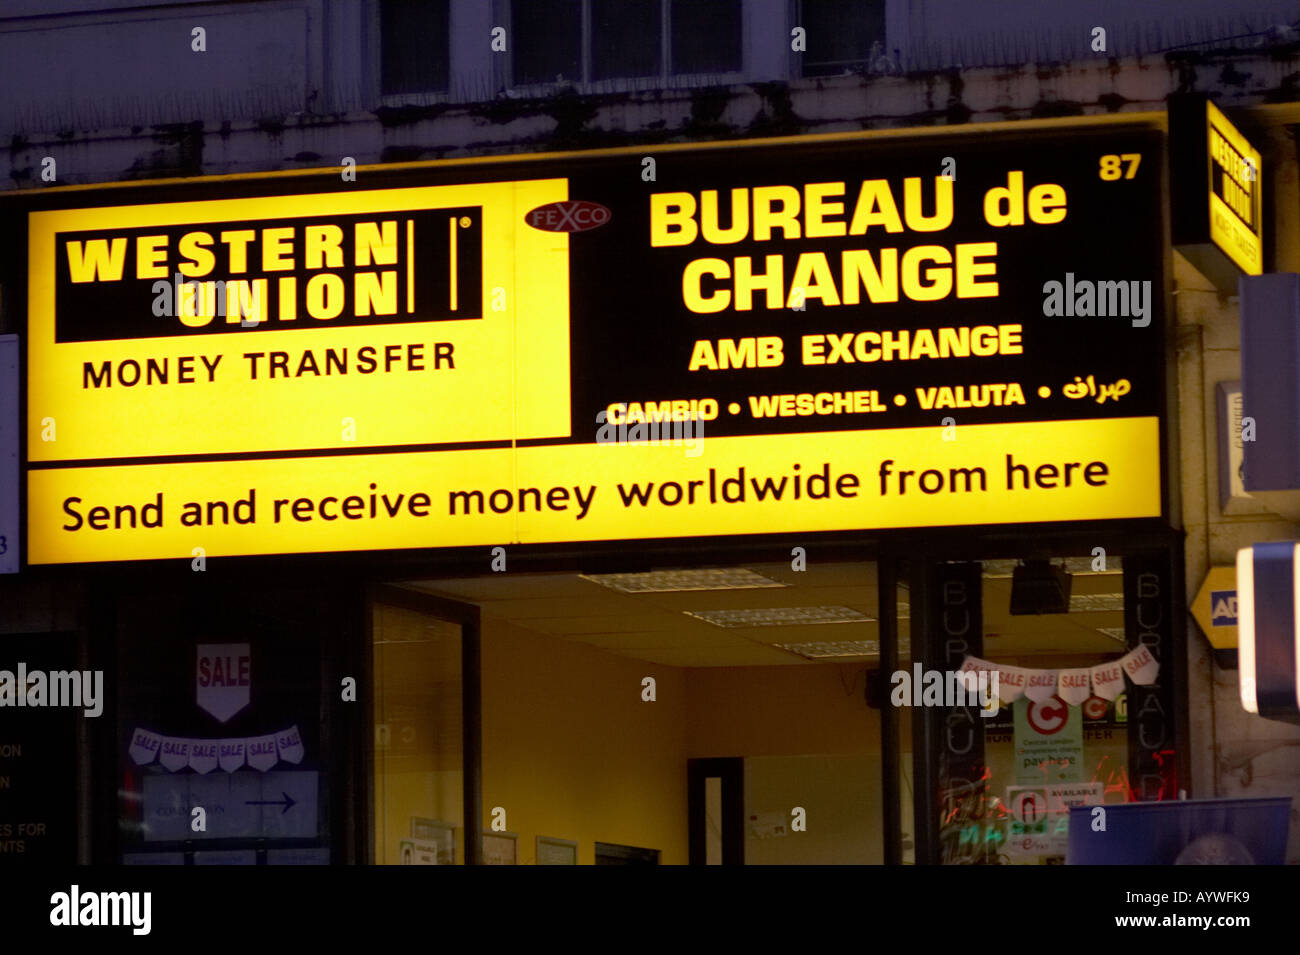 Western union geld transfer bürode Änderung in london uk stockfoto